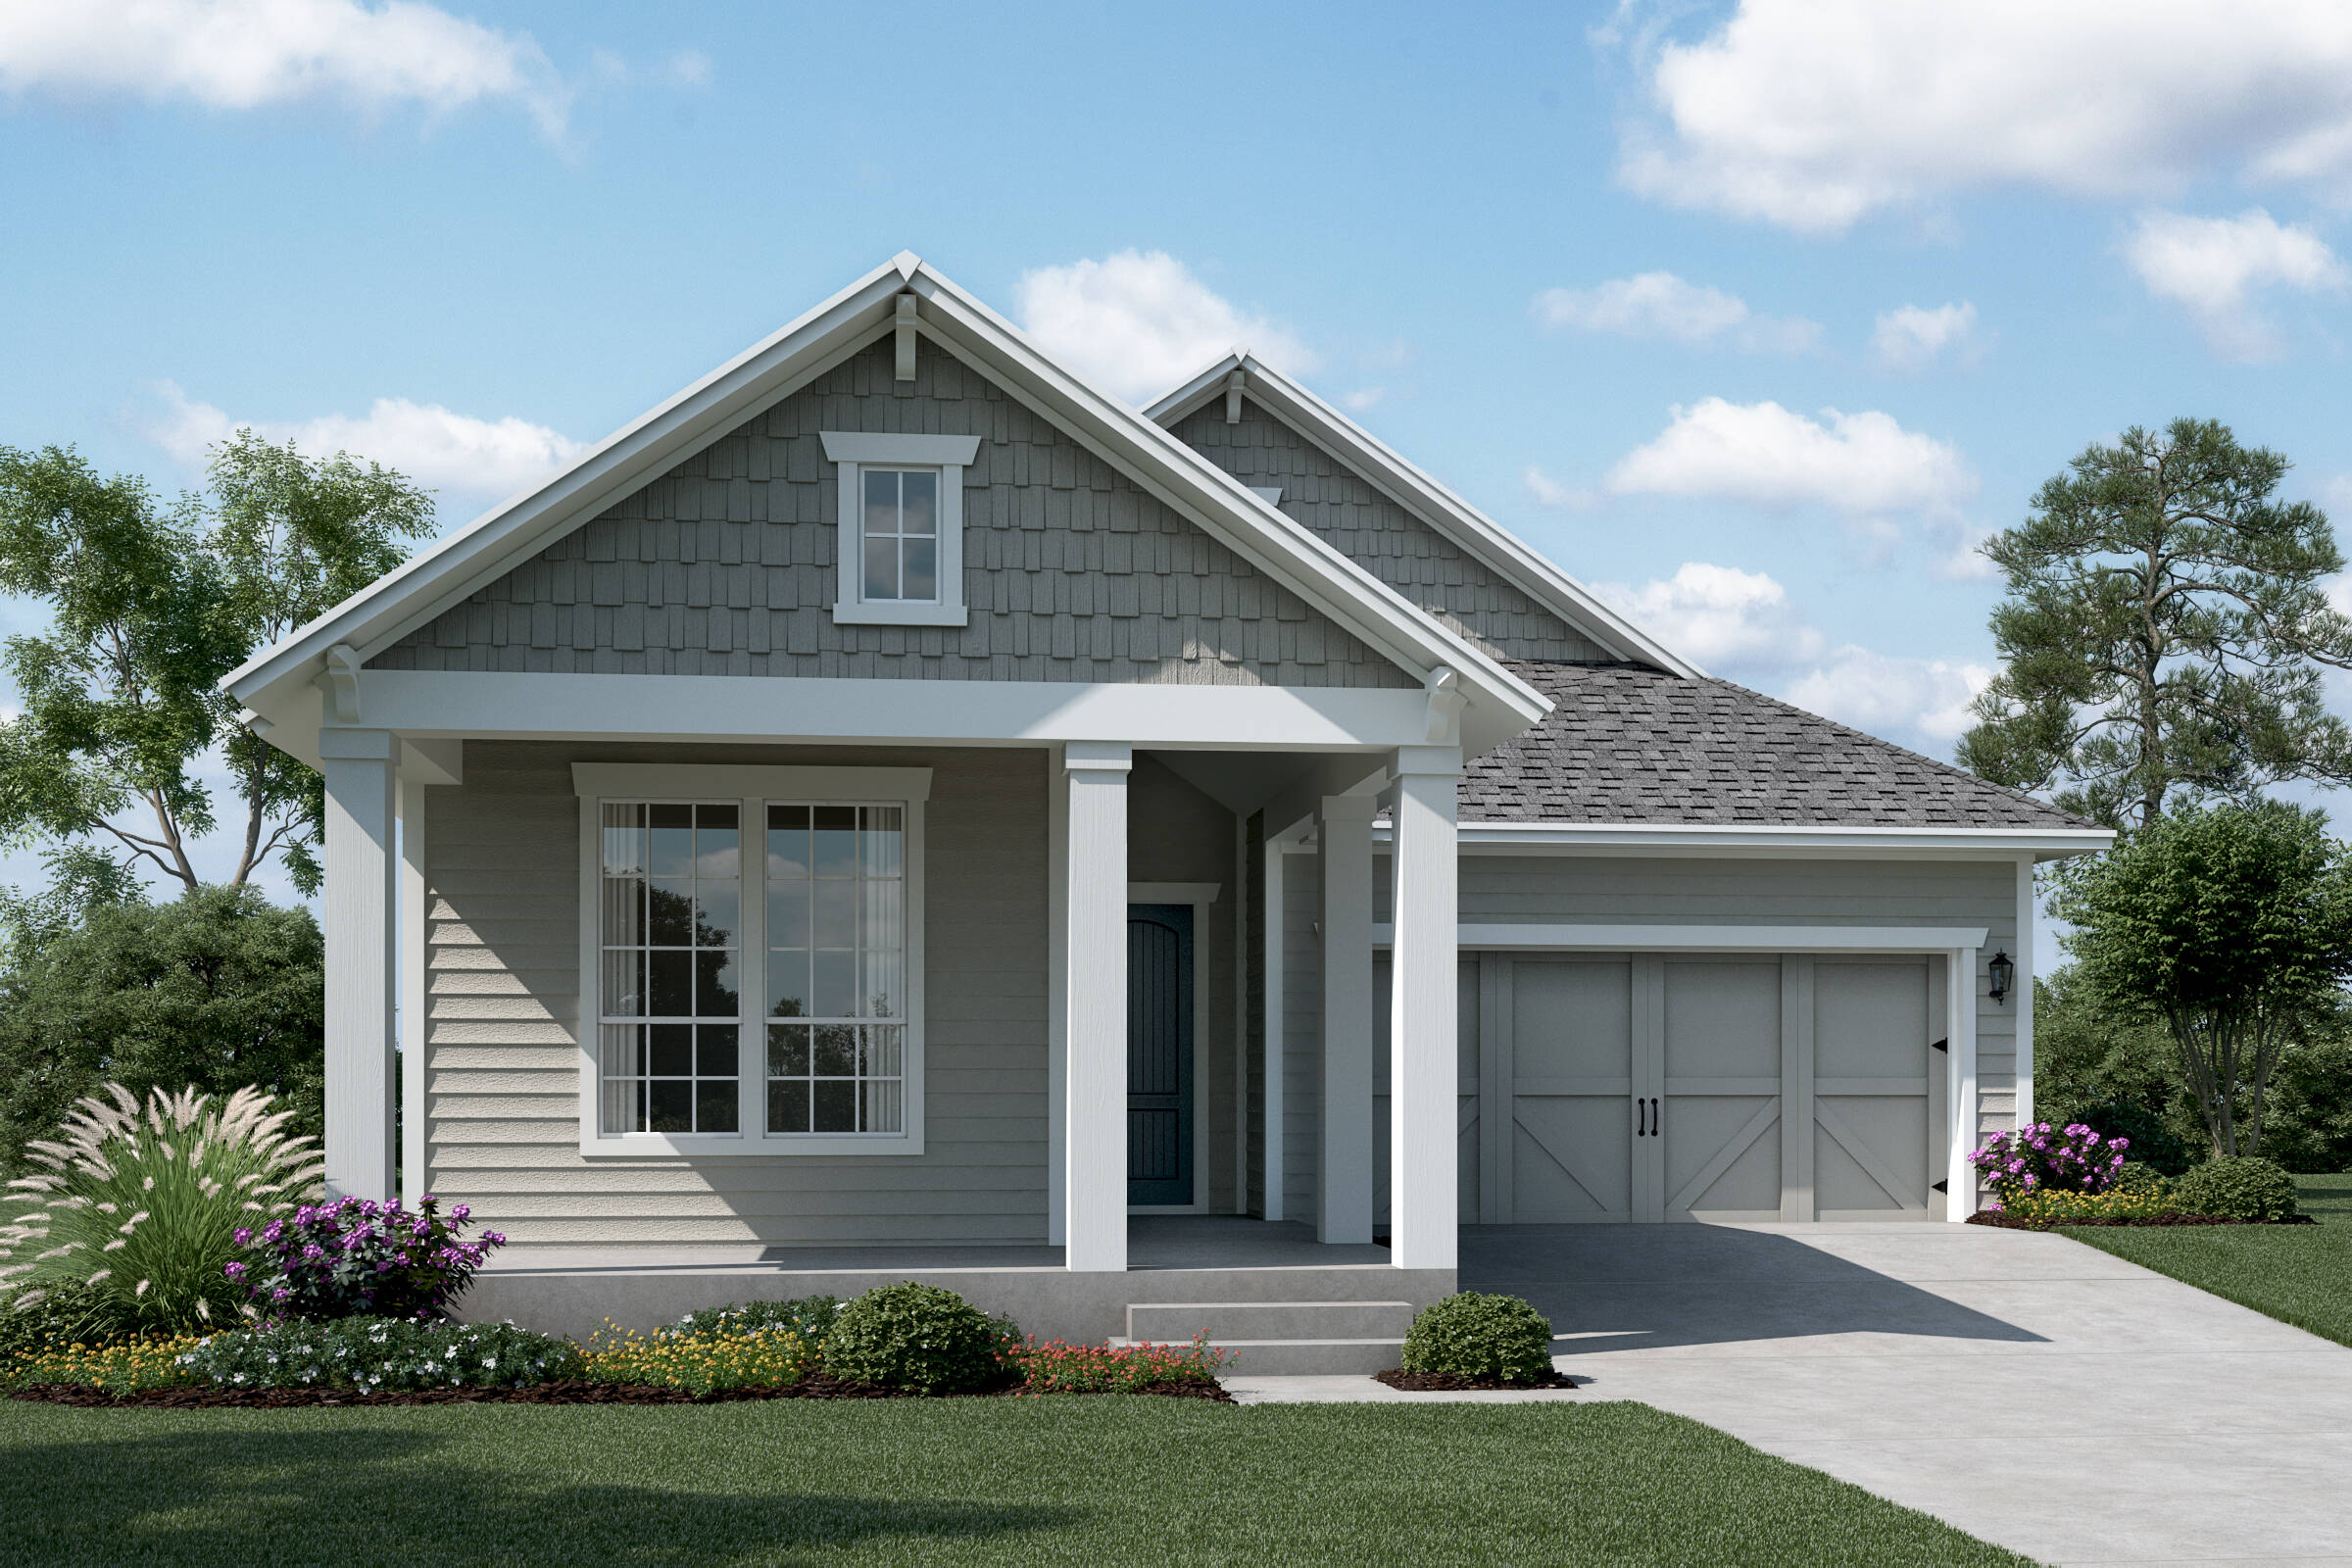 Sonoma A Siding new homes dallas tx